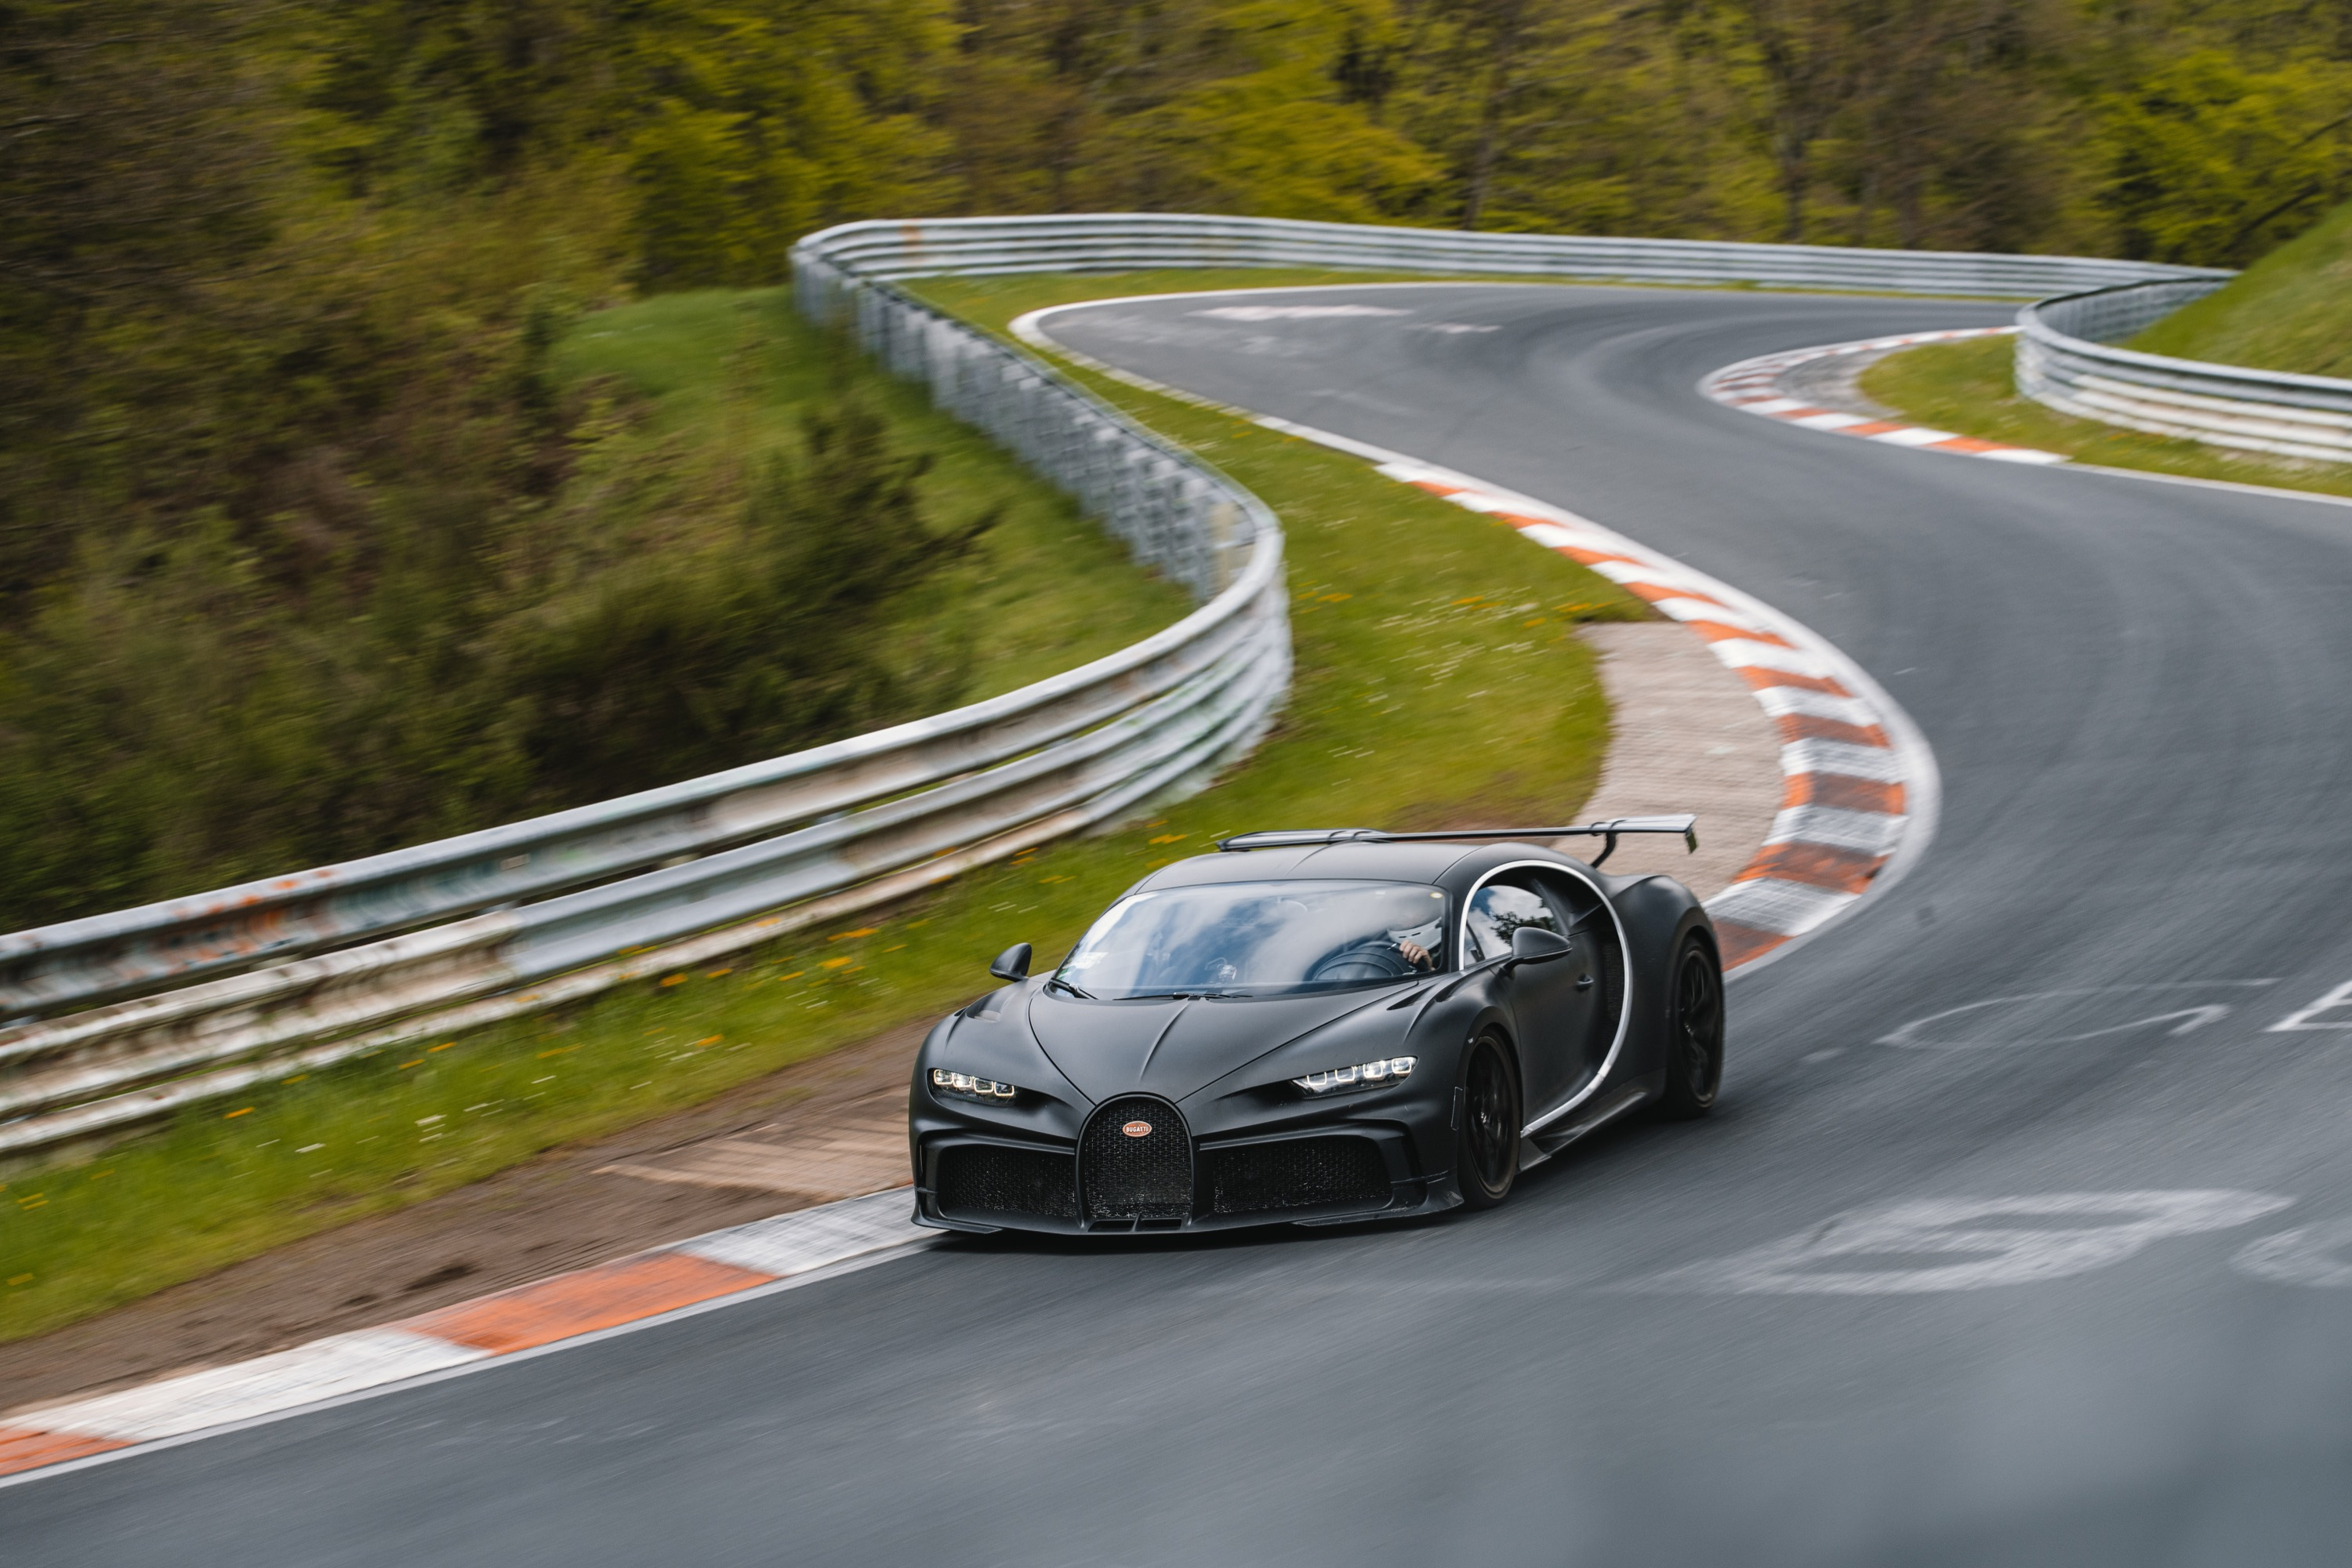 Bugatti did plenty of development work on the Chiron Pur Sport at the Nürburgring.